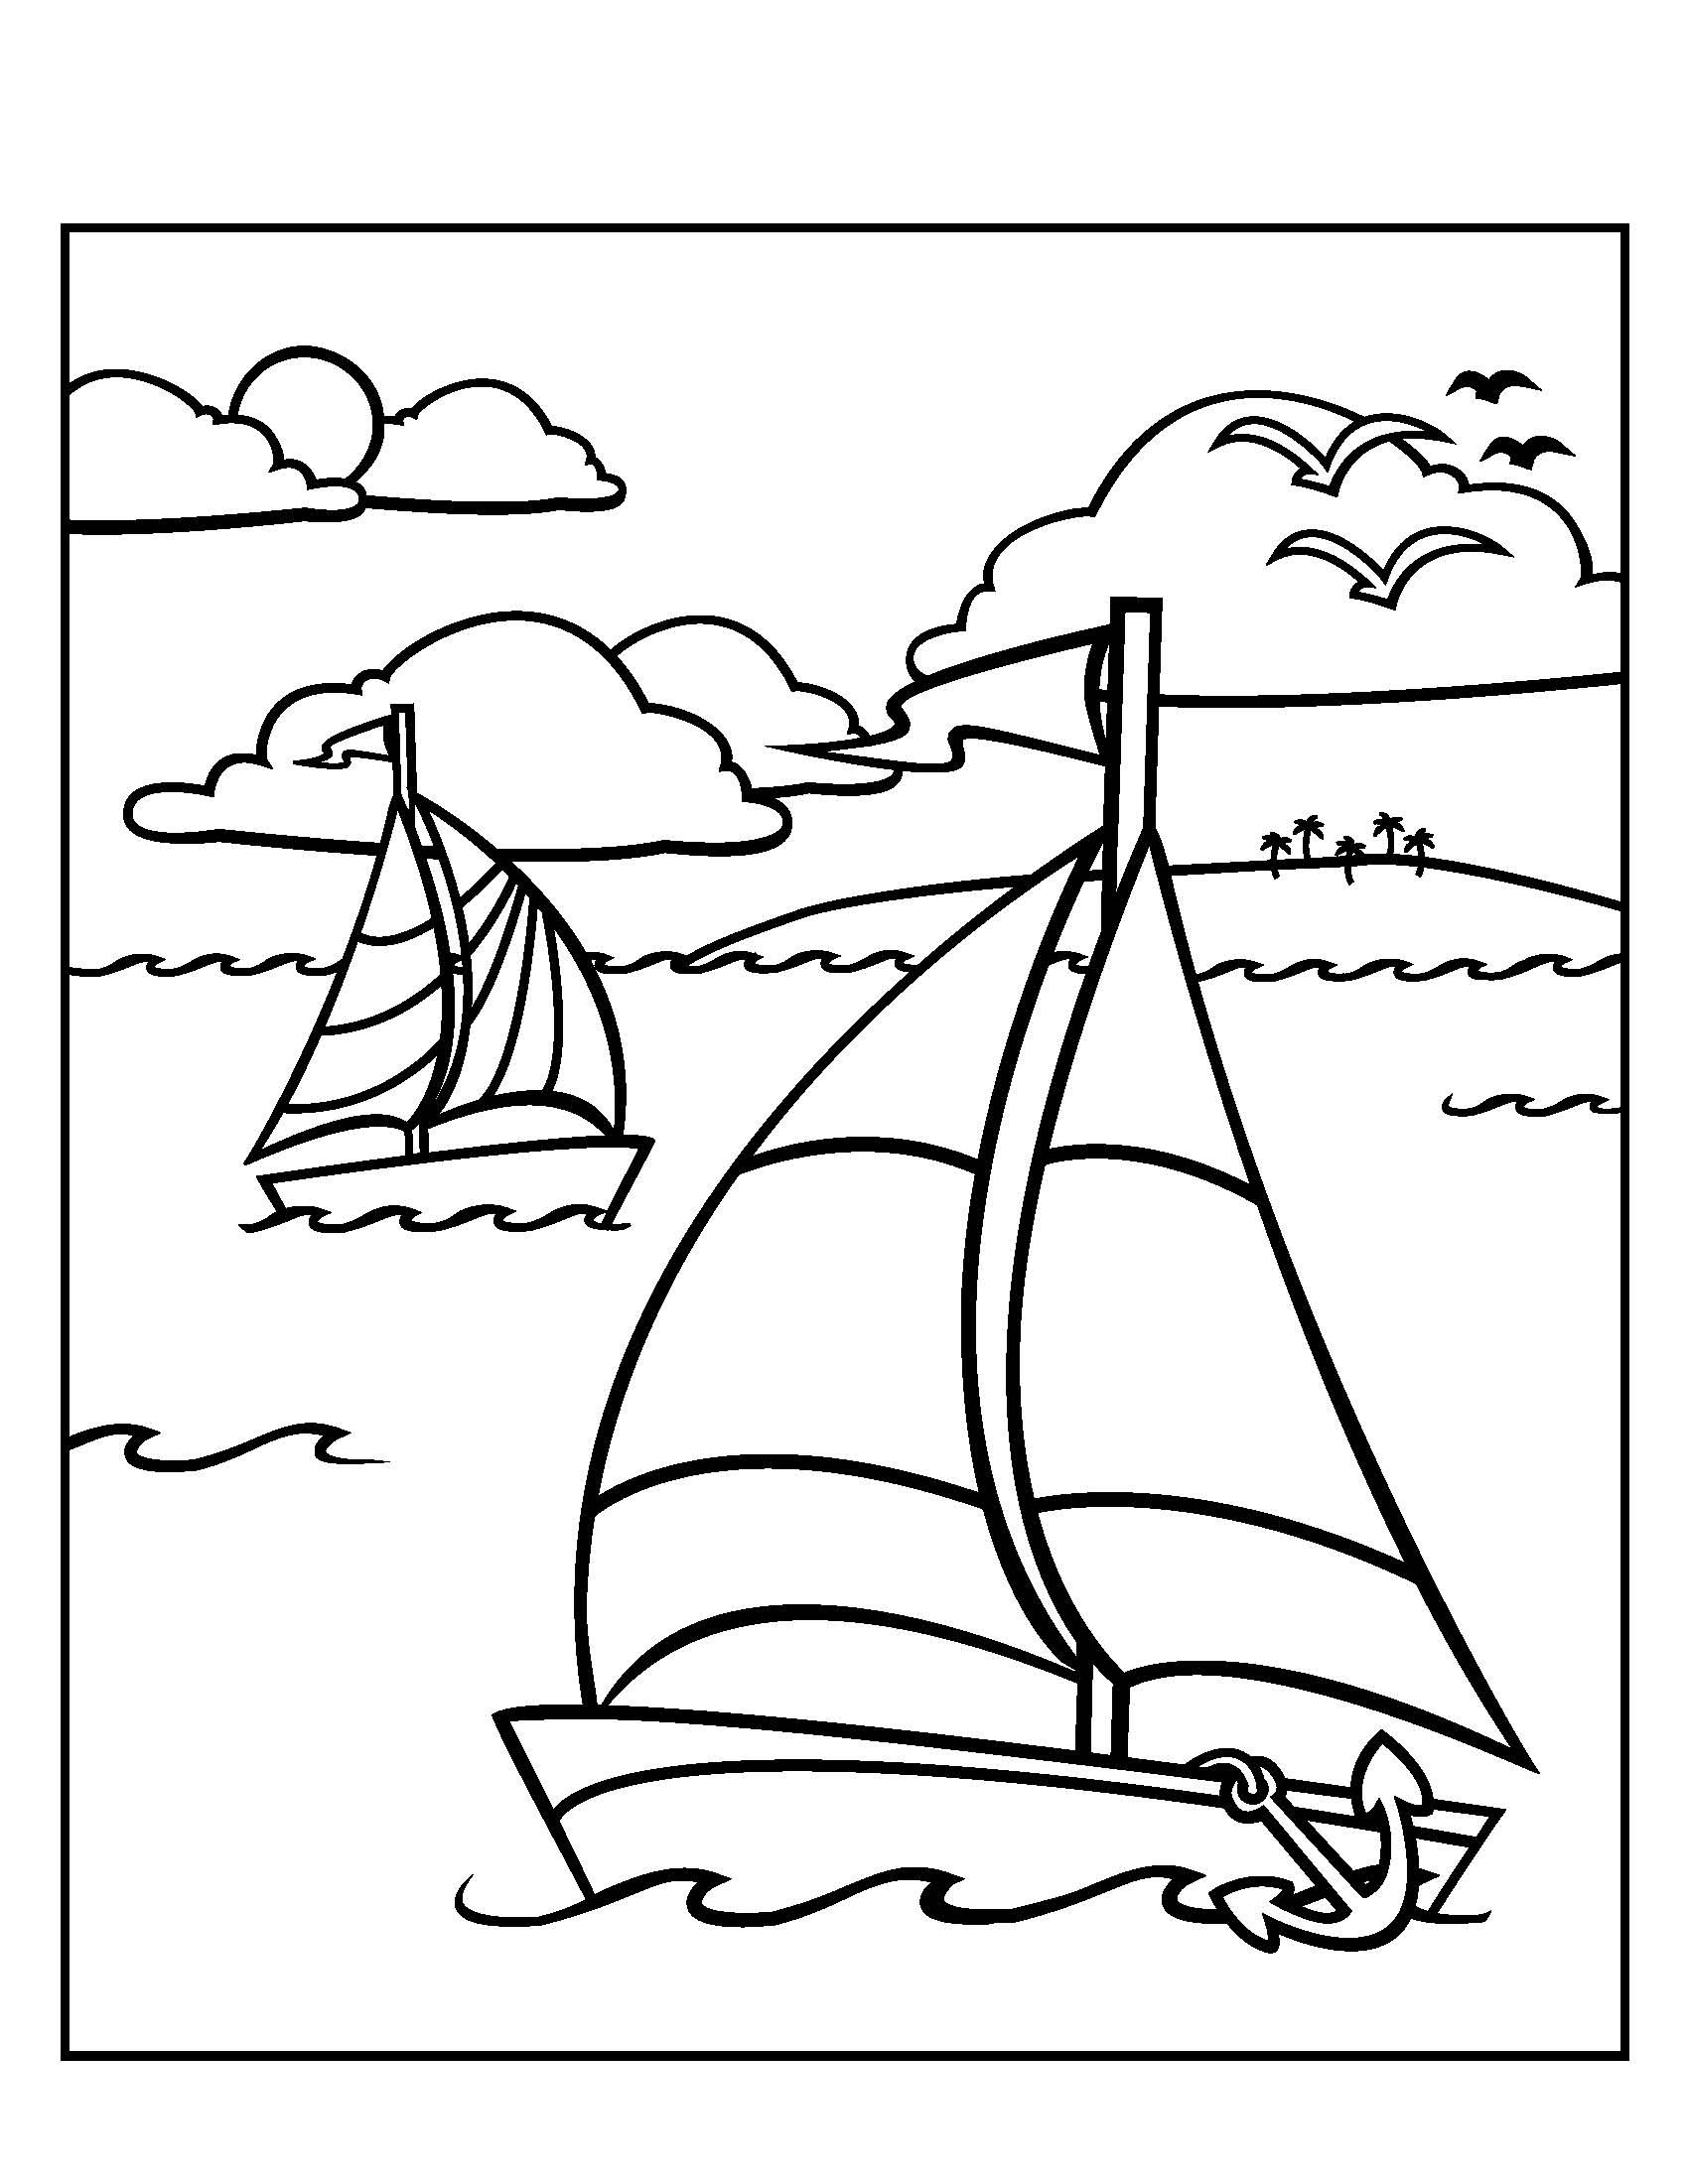 Coloring Pages For Elementary Students At Getcolorings